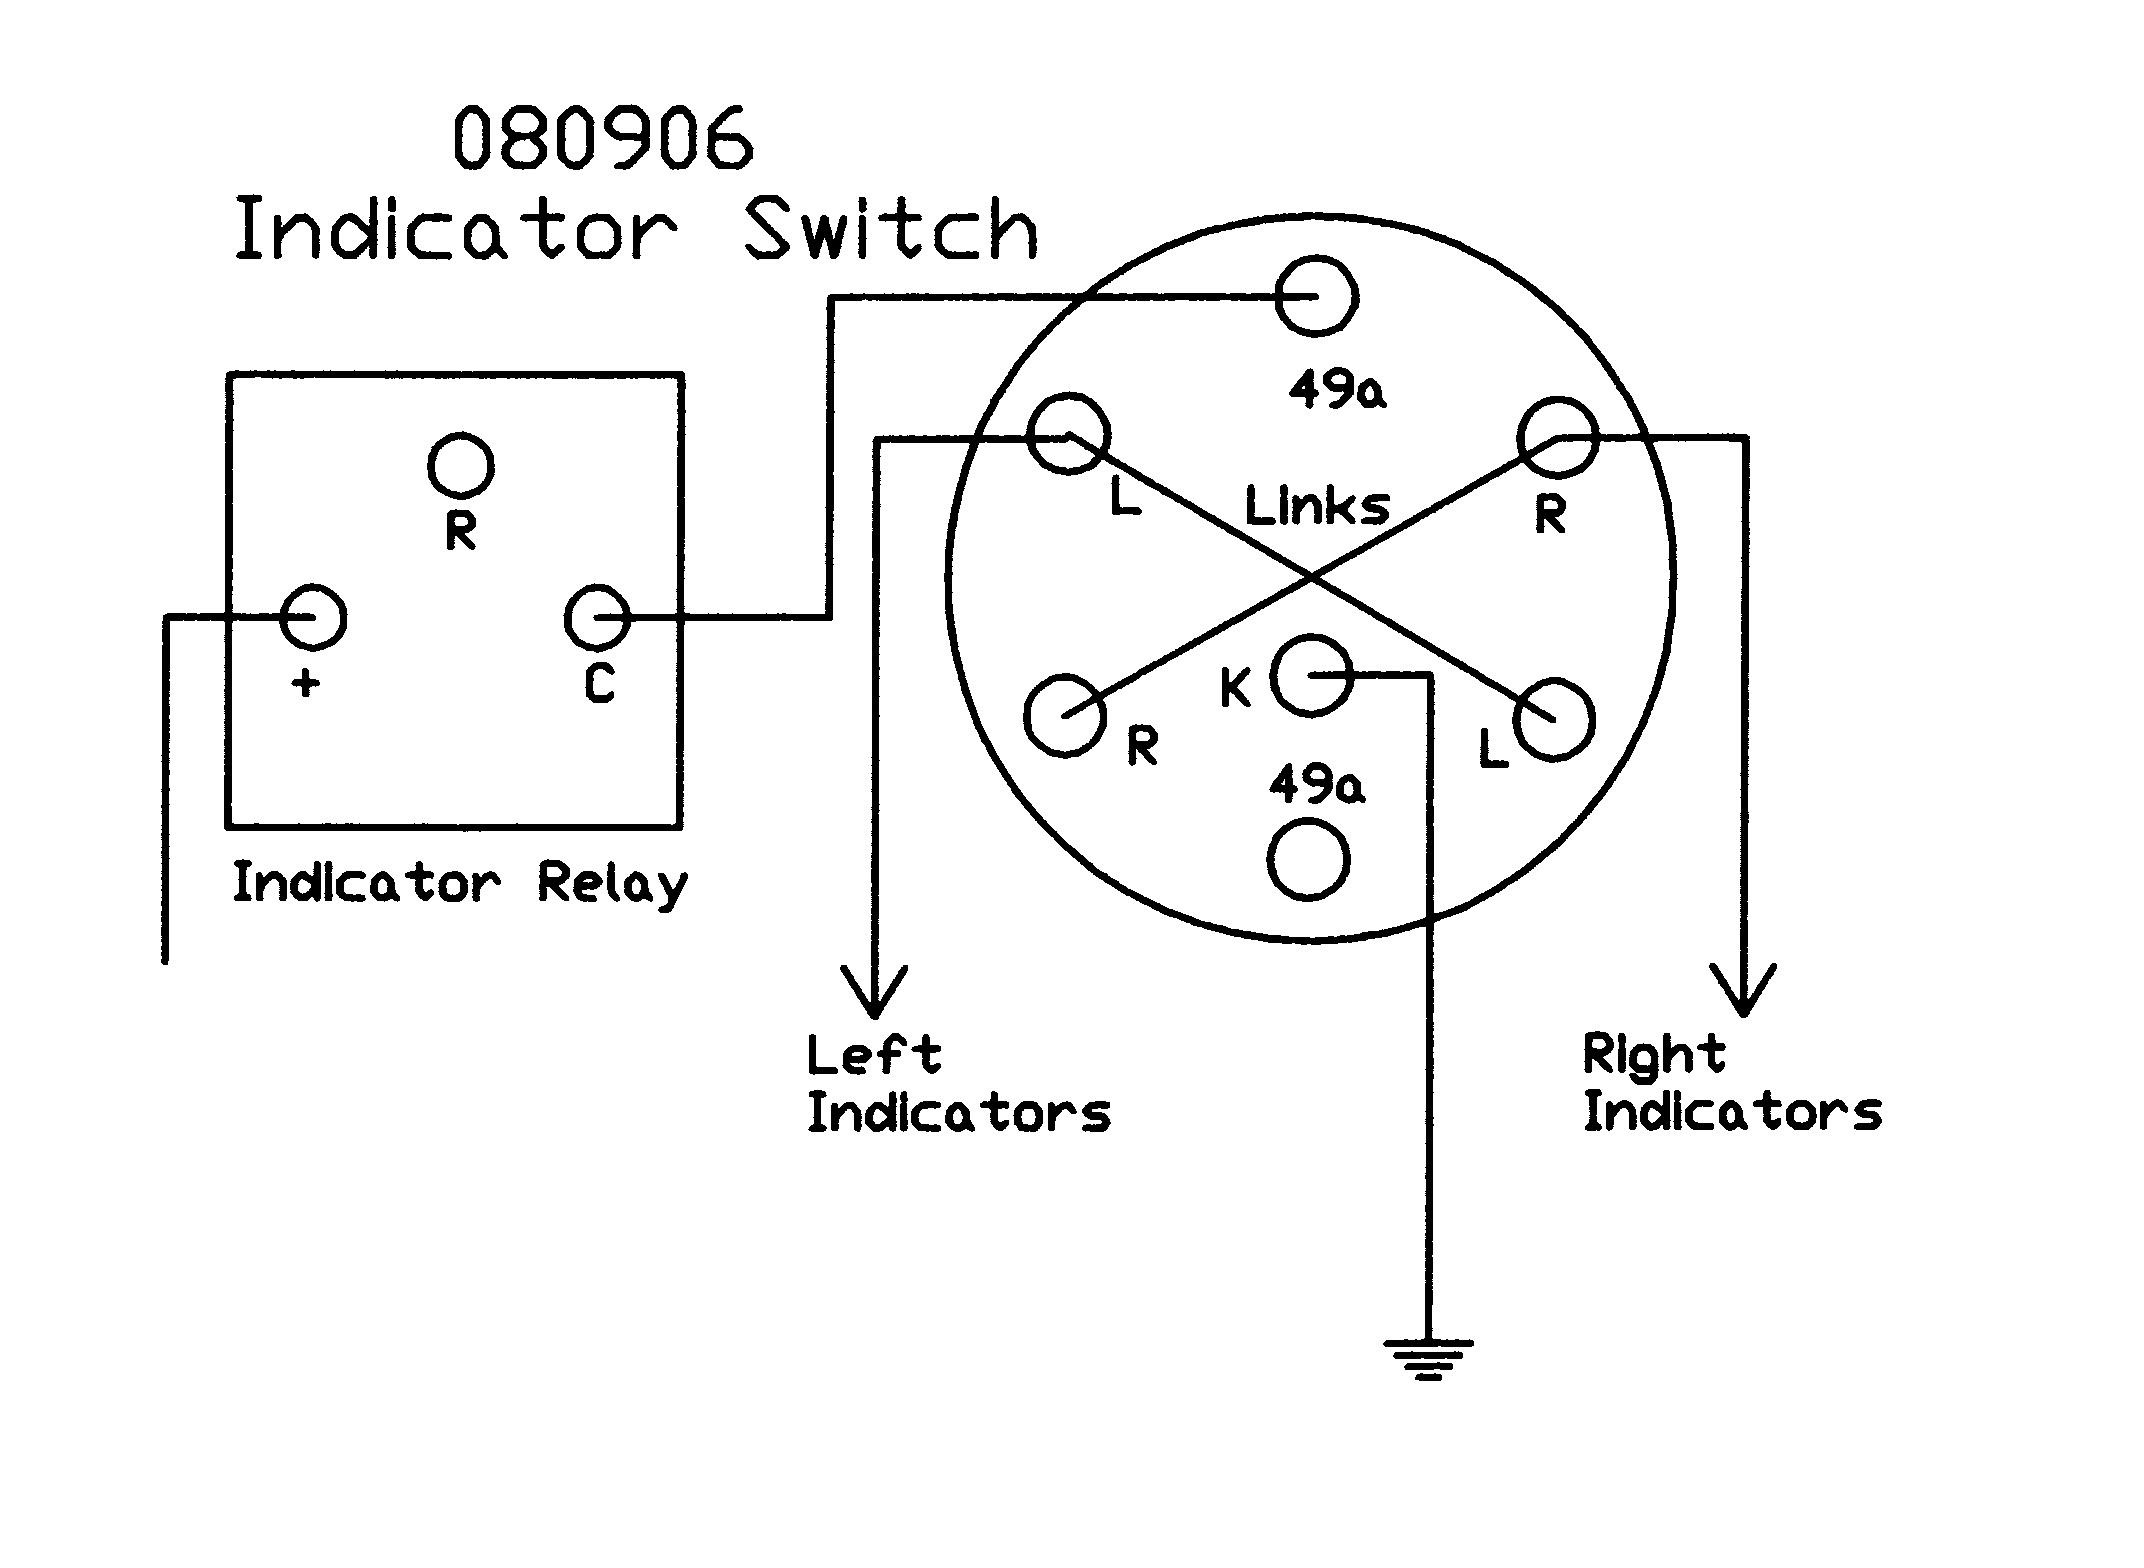 Rotary 4 Pole Wiring Diagram - Wiring Diagram G11 on ignition switch tools, universal ignition switch diagram, ignition switch repair, chevy ignition switch diagram, ignition switch replacement, ignition switch cable, ford expedition fuel diagram, 2001 jeep grand cherokee fuse box diagram, ignition switch relay diagram, ignition tumbler diagram, ignition switch wire, ignition switch plug, ignition switch sensor, yj ignition diagram, 1969 mustang ignition switch diagram, ignition switch fuse, ignition switch index, ignition switch system, harley ignition switch diagram, ignition switch troubleshooting,